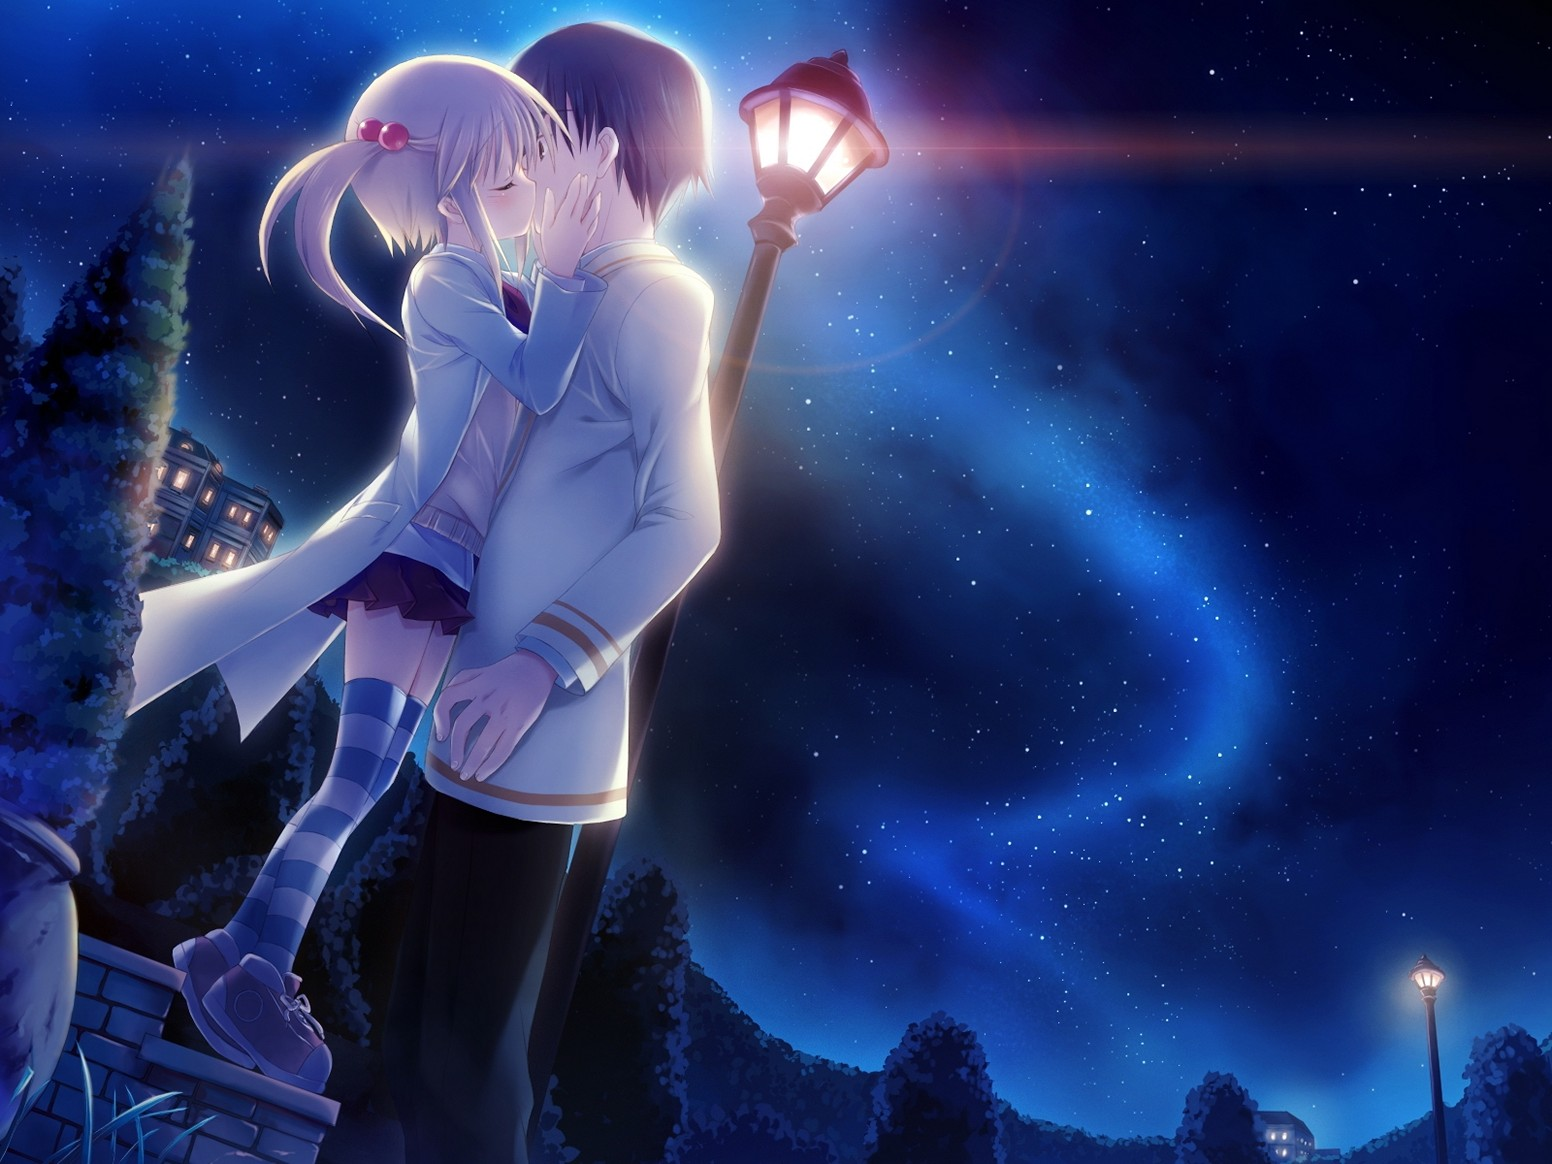 Anime Boy And Girl In Love Wallpaper : Boy Girl Kiss Wallpapers (40 Wallpapers) Adorable Wallpapers